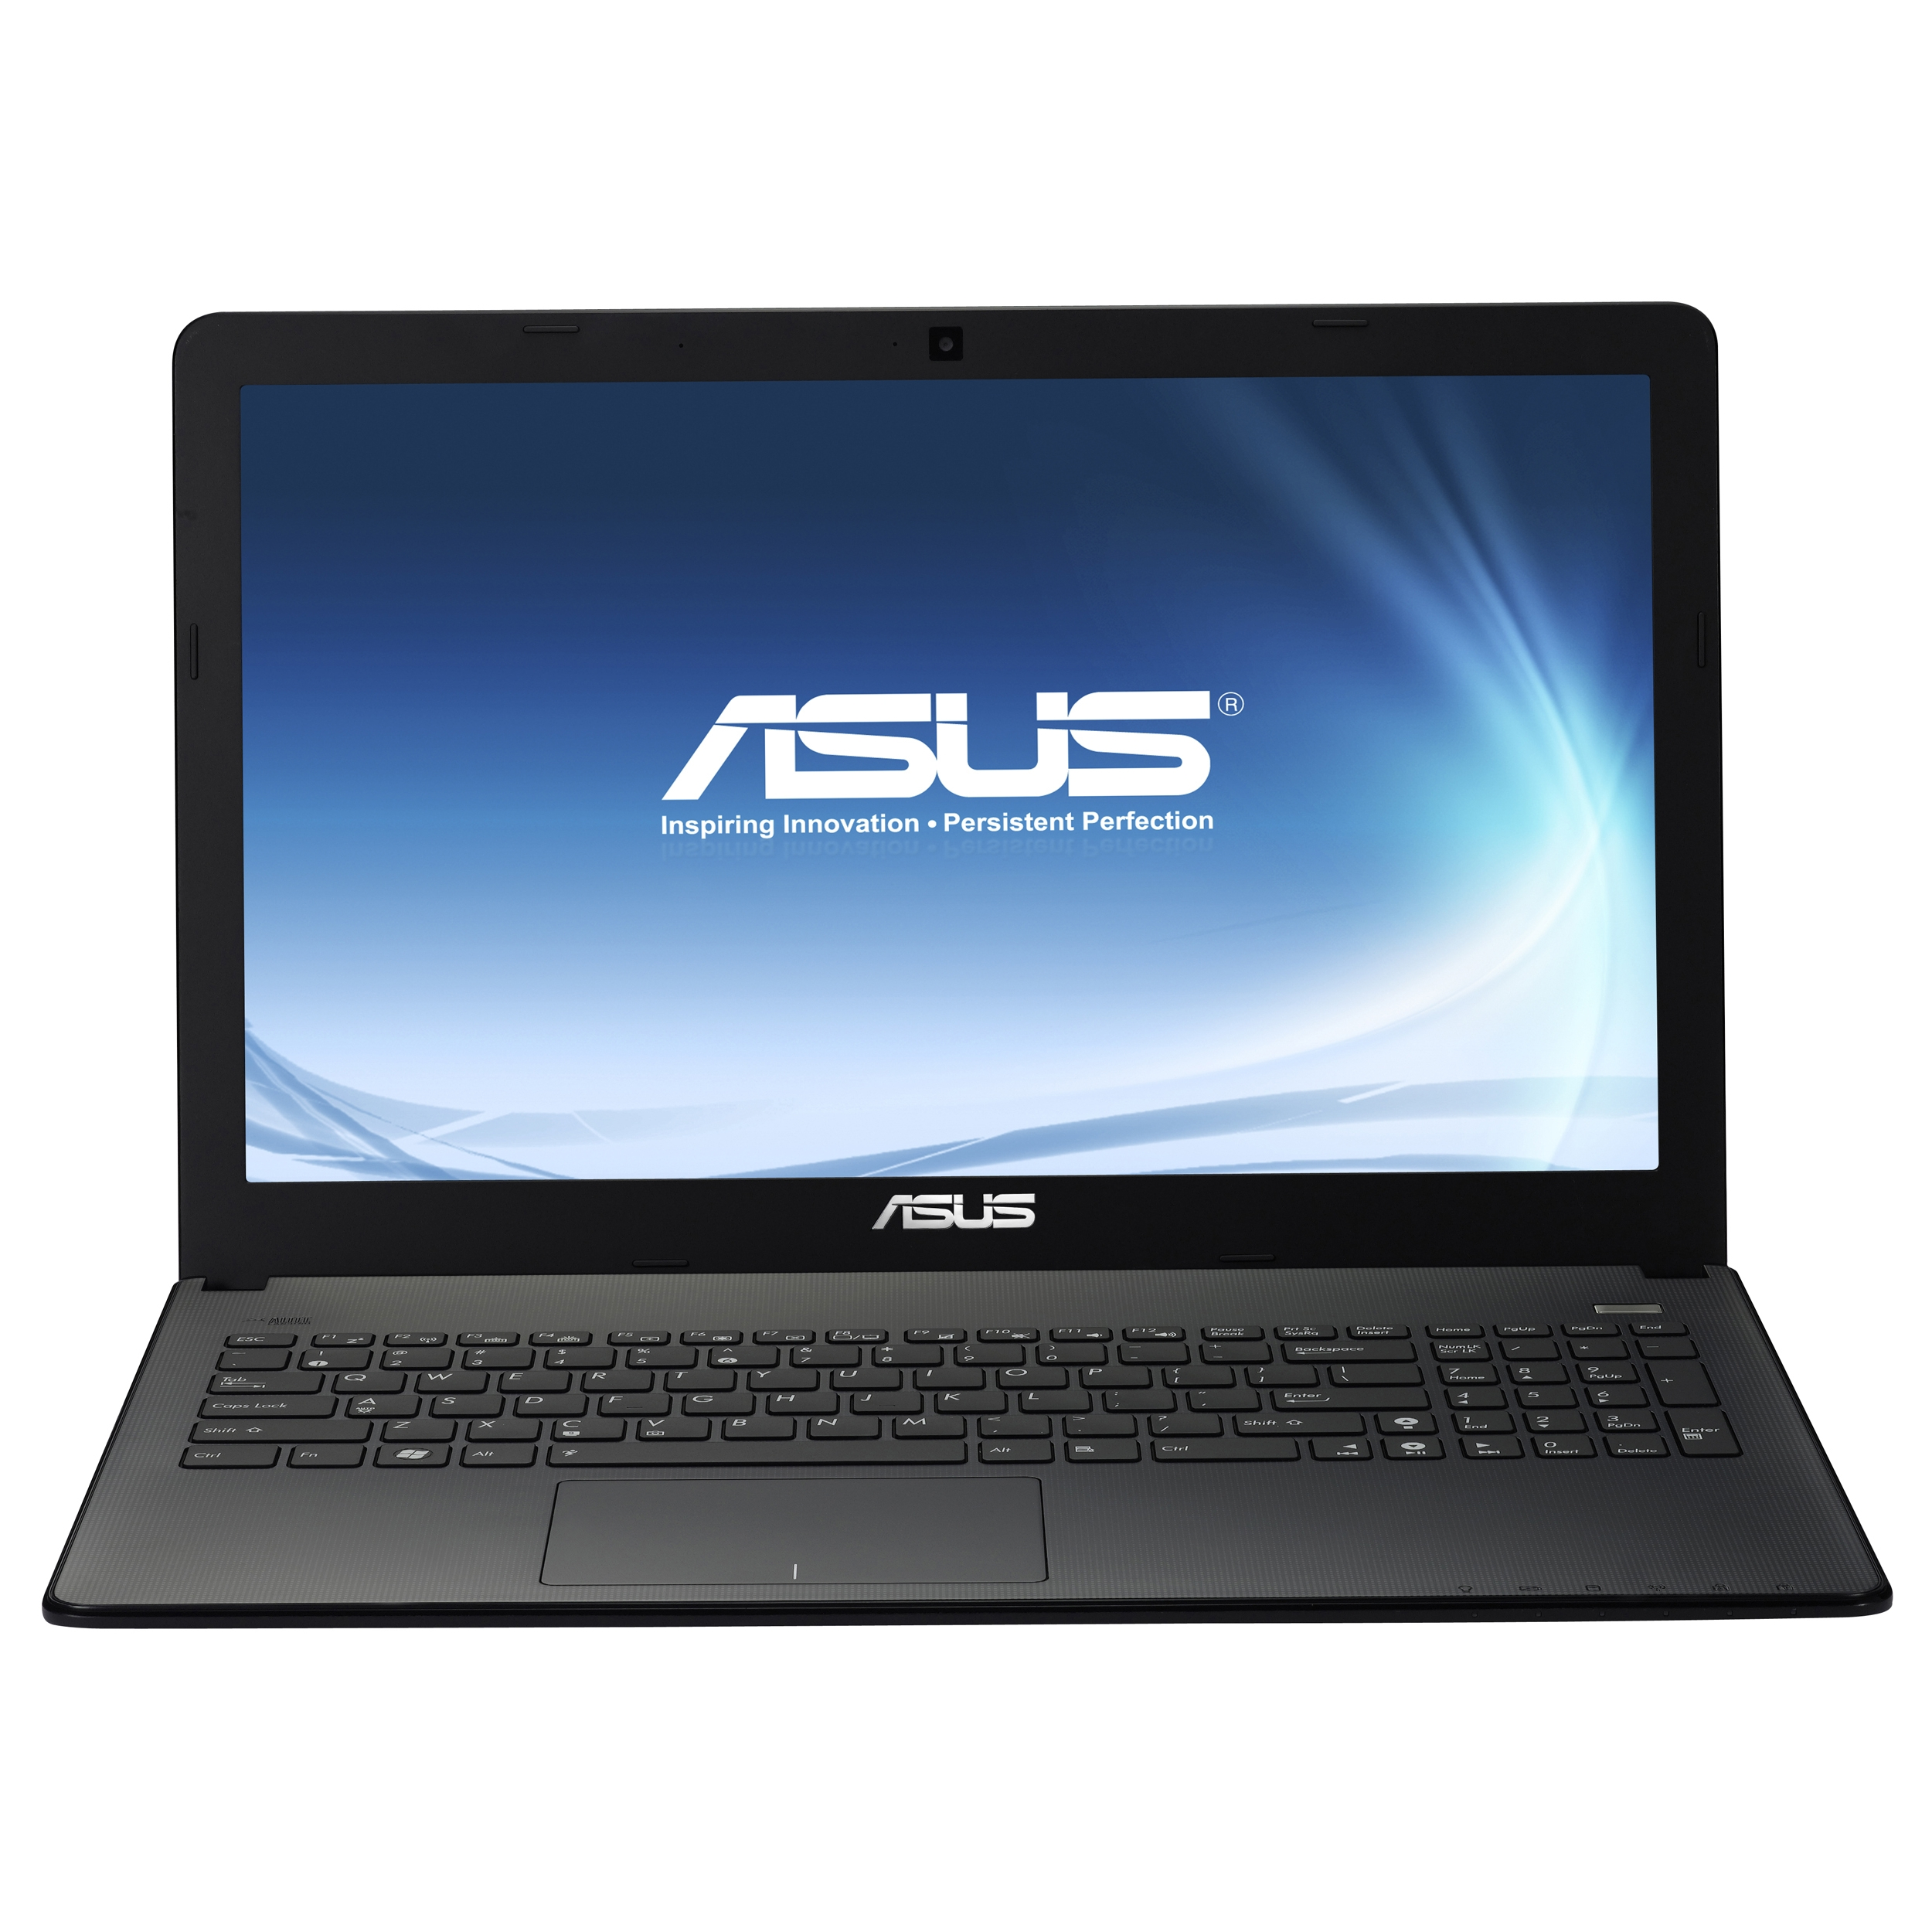 "Asus Pink 15.6"" X501A-DH31-PK Laptop PC with Intel Core i3-2350M Processor and Windows 8 Operating System"